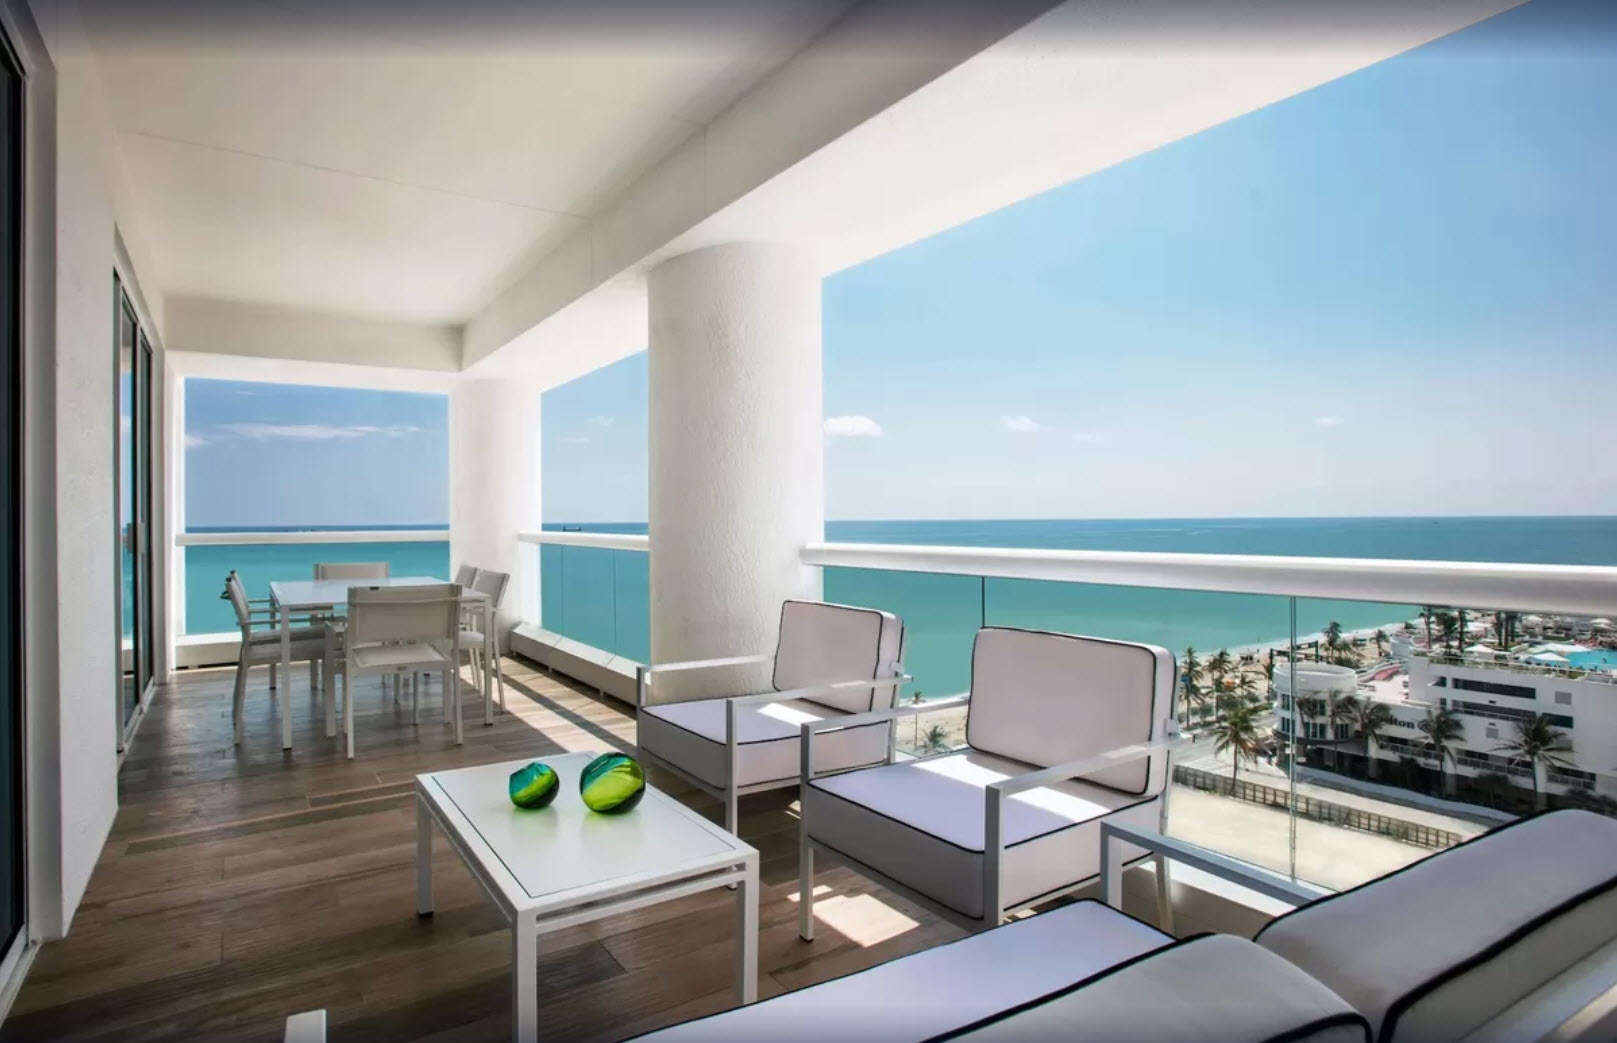 Luxury vacation rentals usa - Florida - Fort lauderdale - Conrad fort lauderdale beach - 2 BDM Oceanfront - Image 1/10